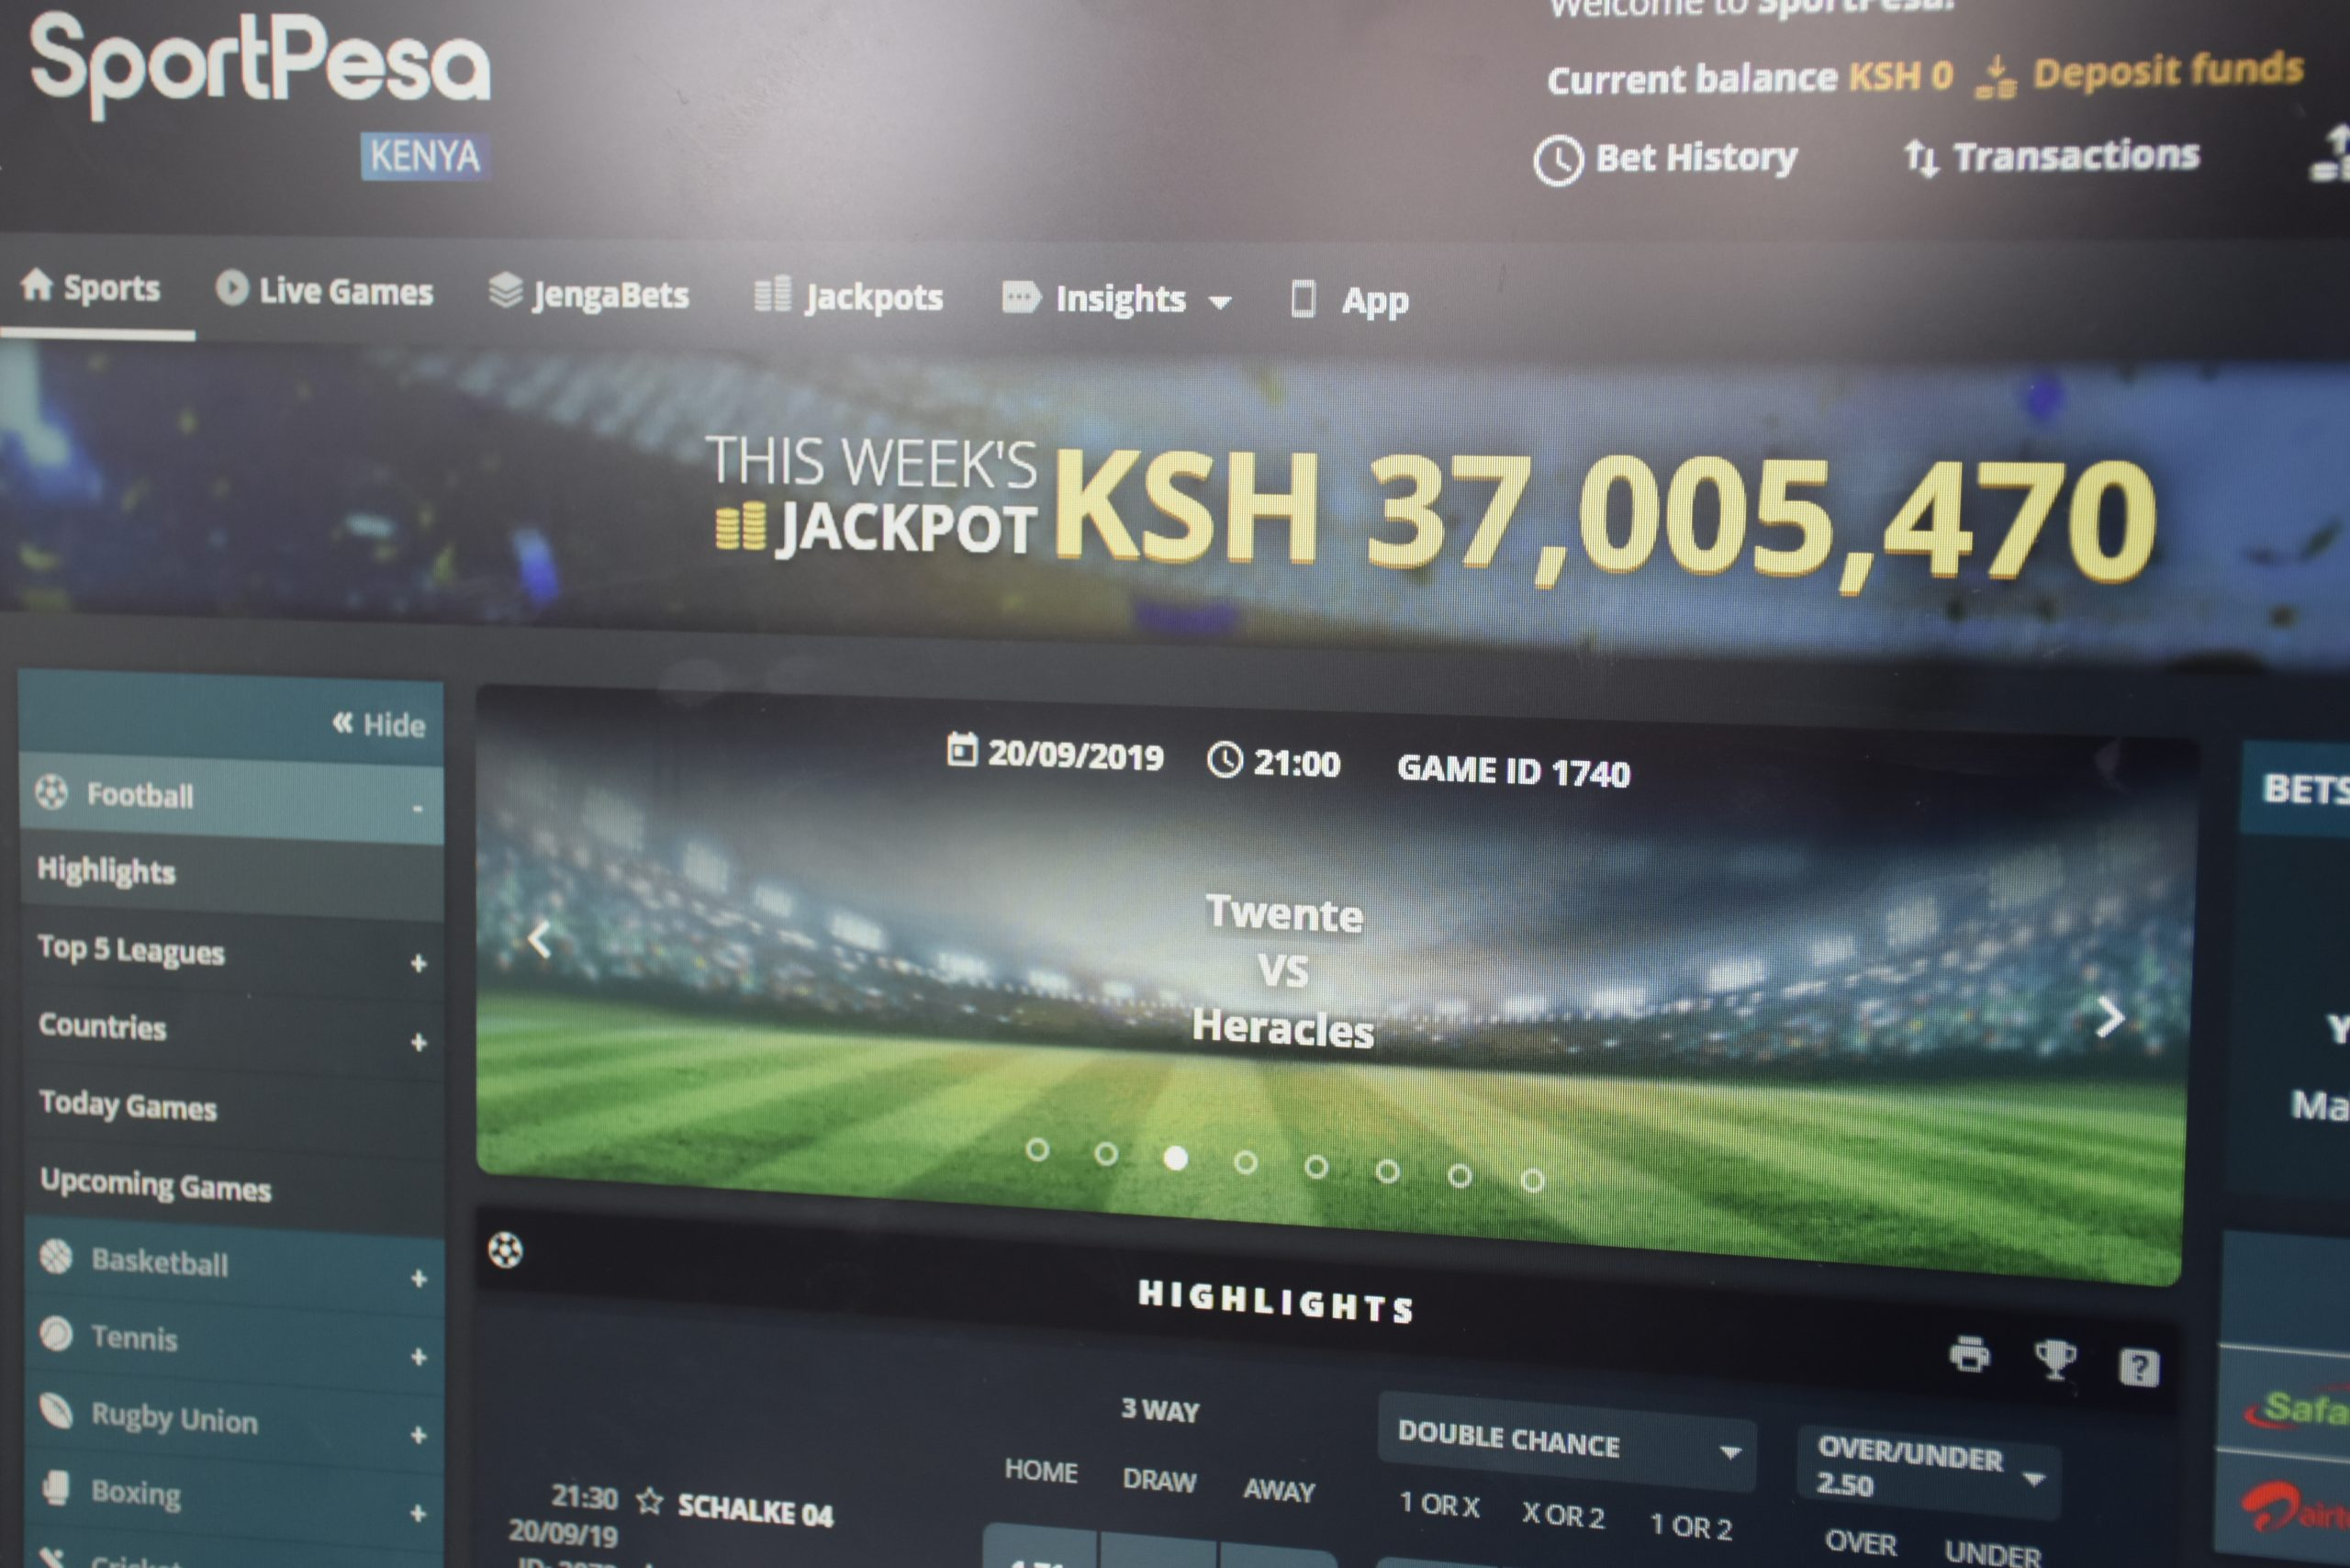 SportPesa was forced to close shop in Kenya after failing to renew its license with the Betting Control and Licensing Board (BCLB). www.businesstoday.co.ke